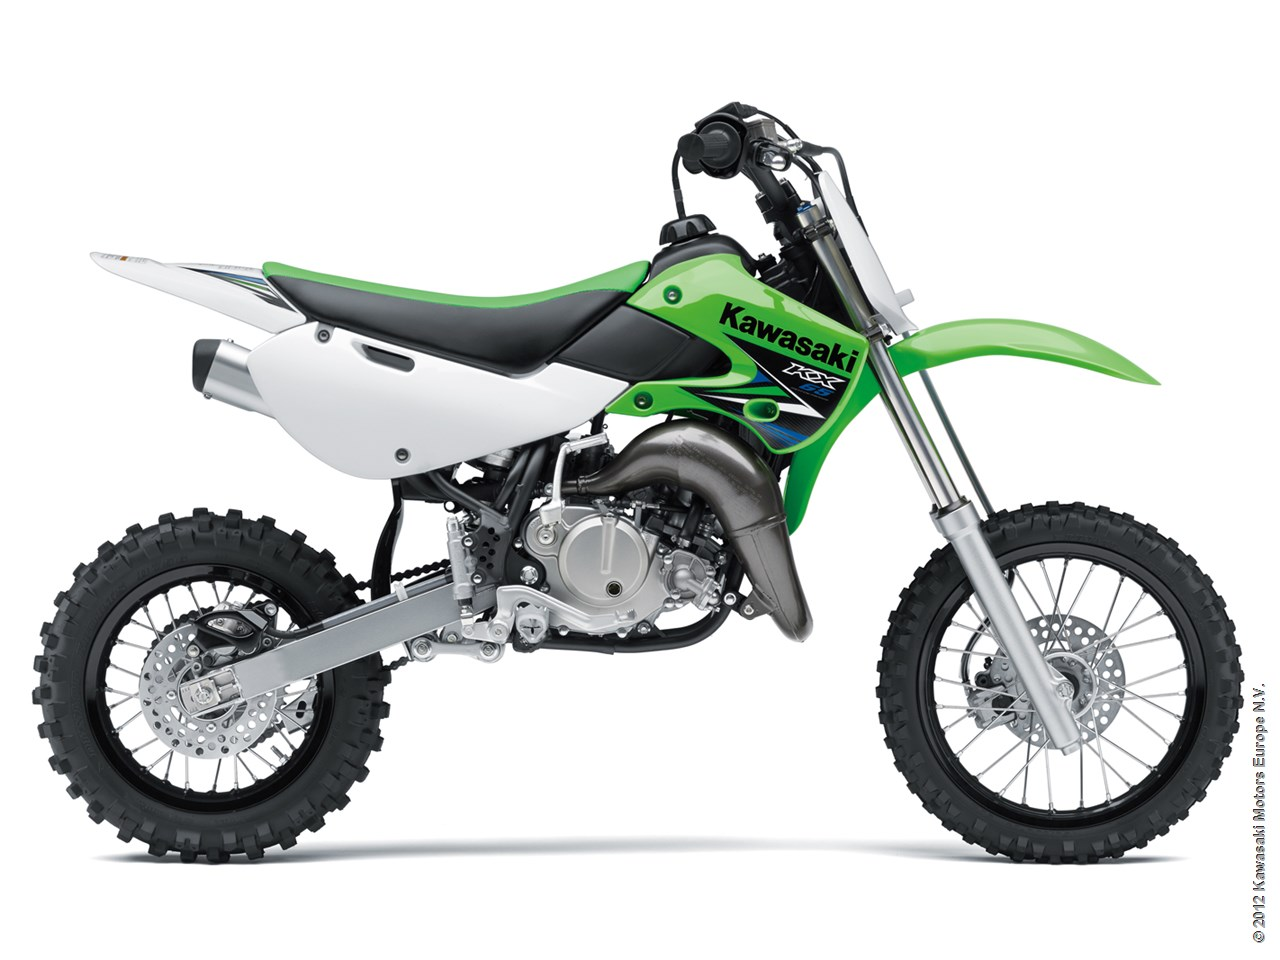 kawasaki kx 65 bilder und technische daten. Black Bedroom Furniture Sets. Home Design Ideas